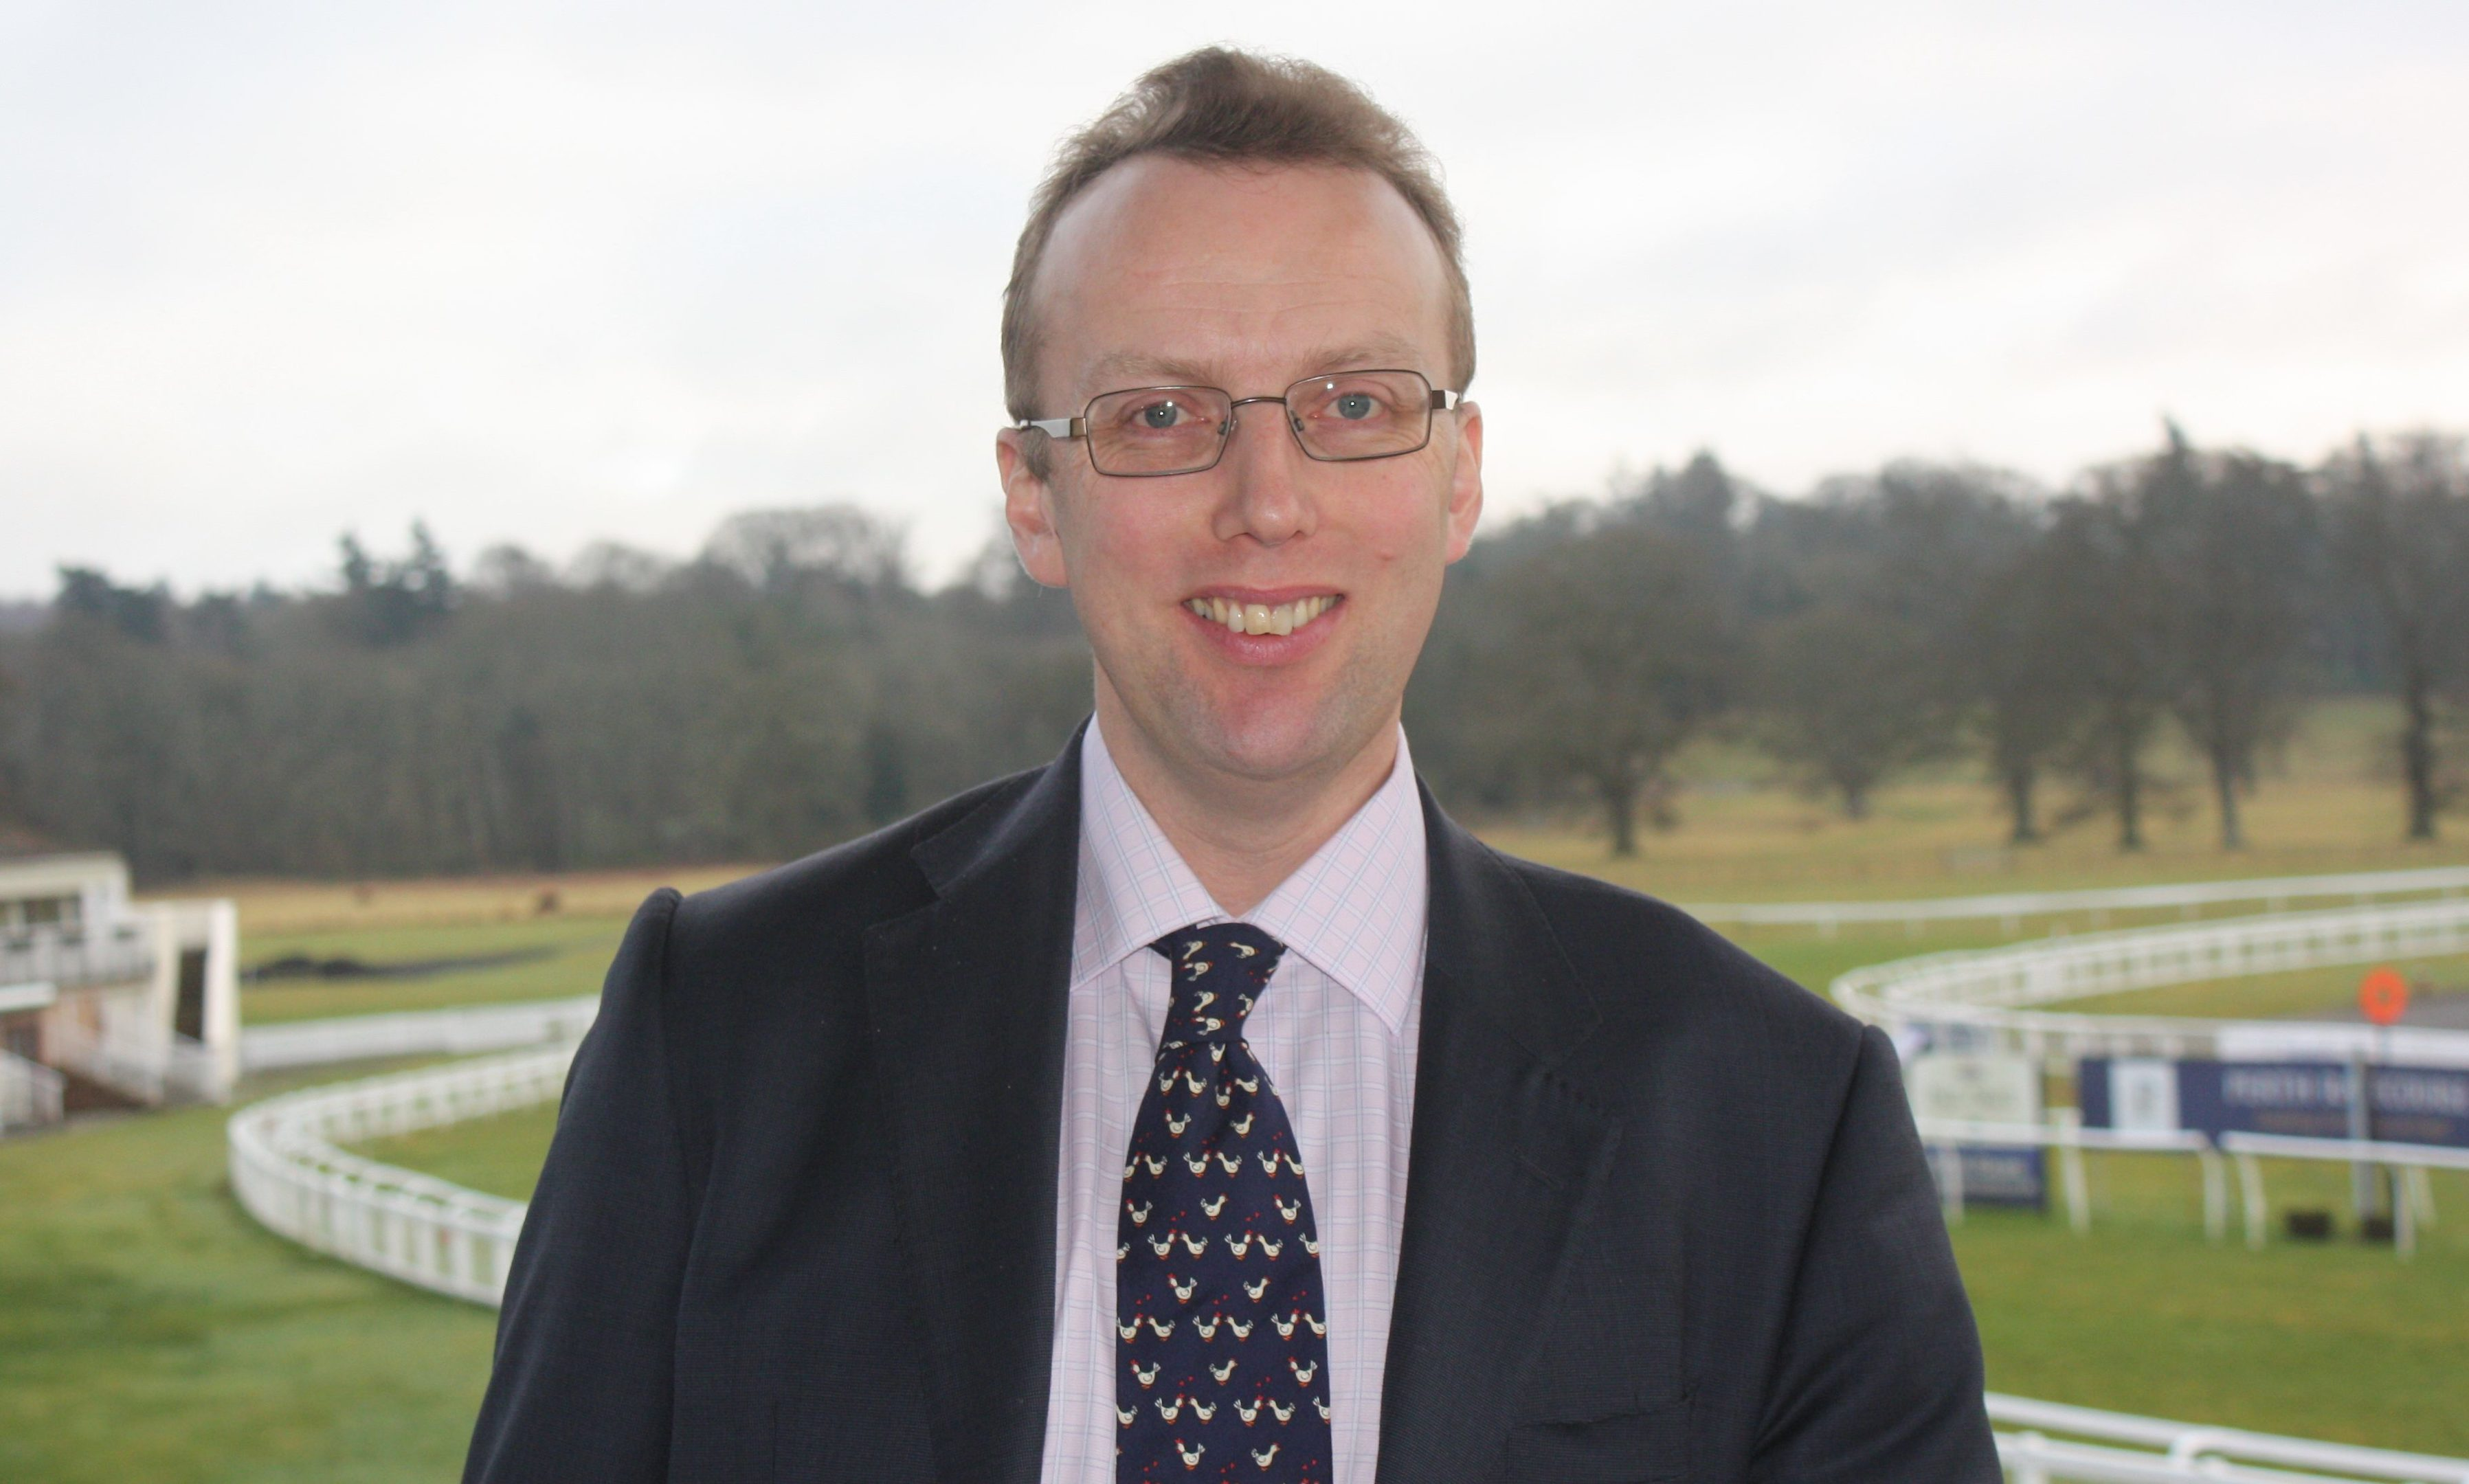 Julian Bell encouraged arable farmers to explore local markets during his address at Agronomy 2017 Scotland) at Perth Racecourse